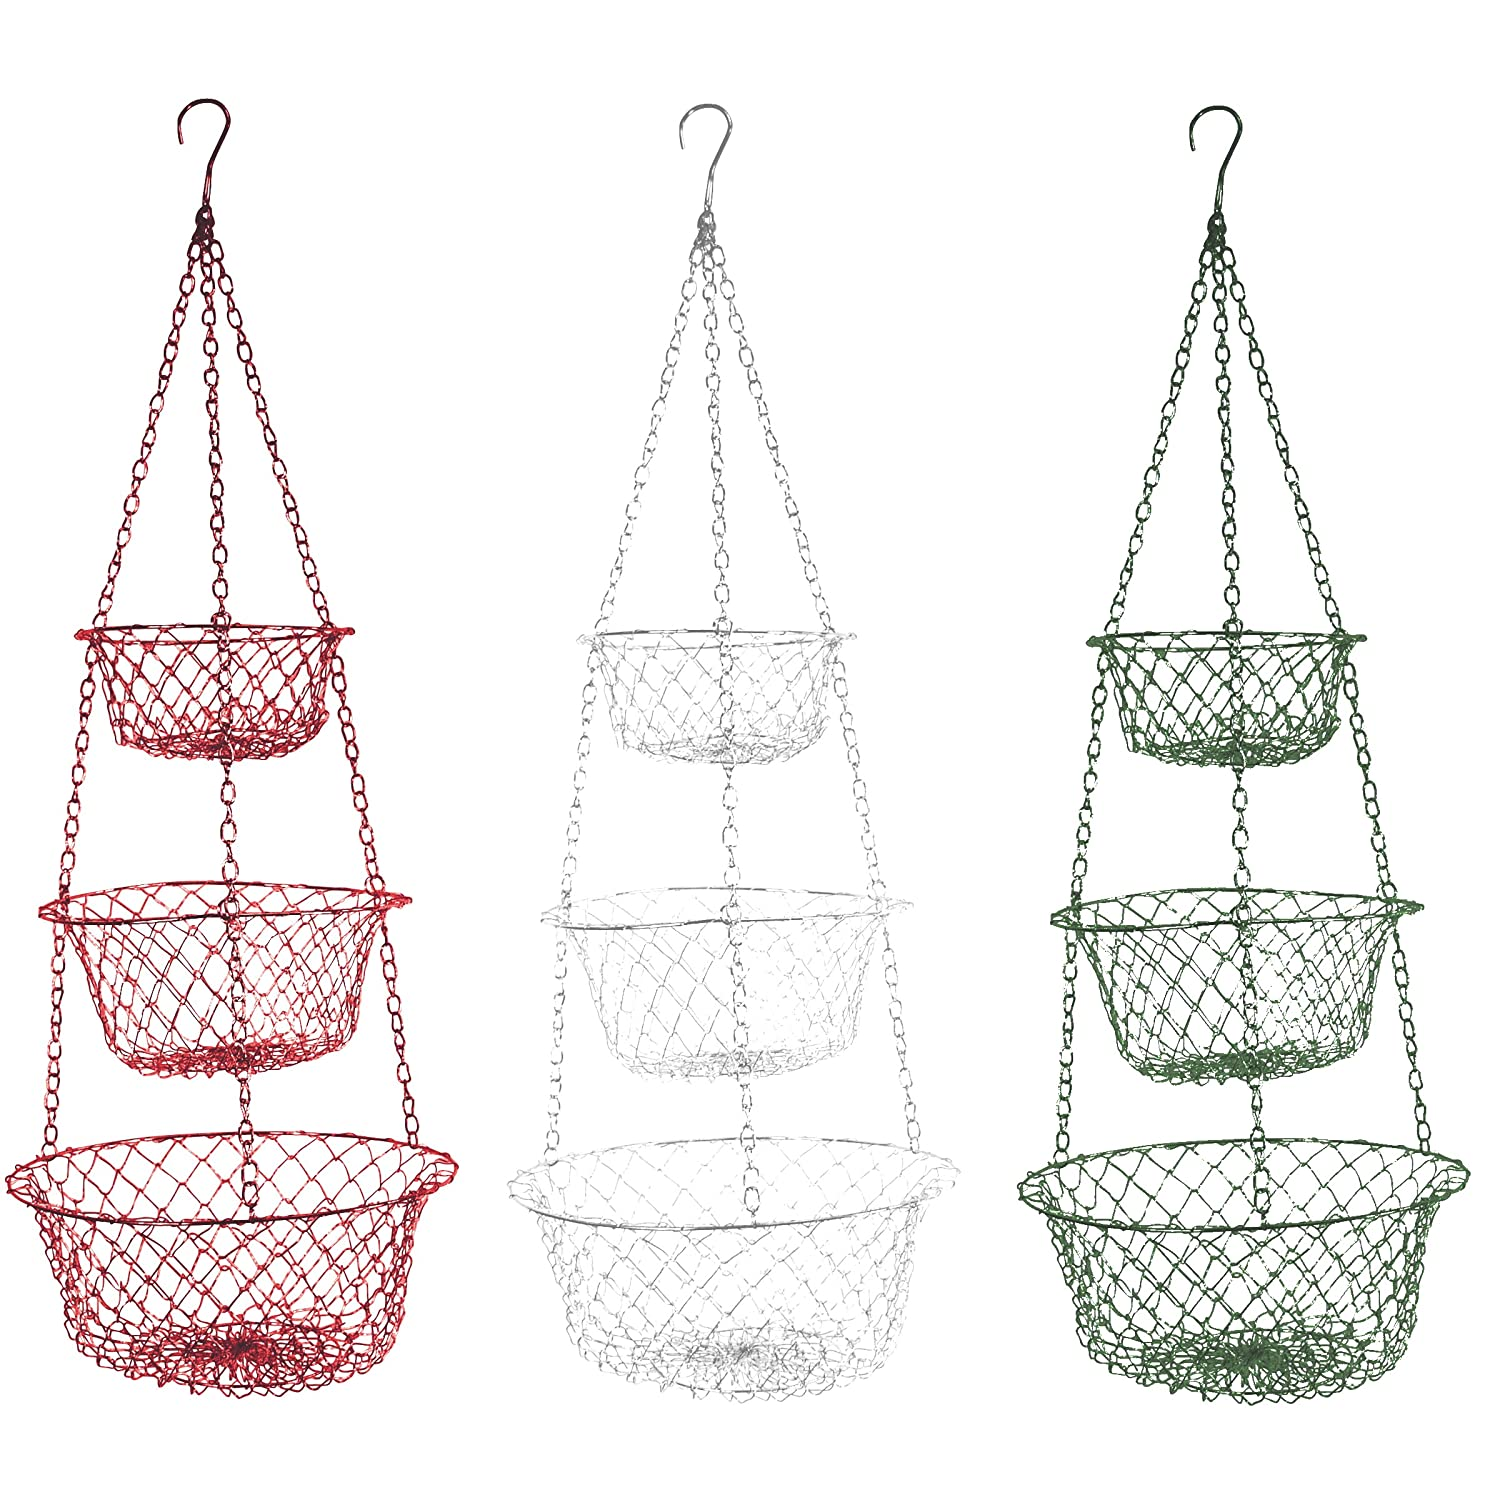 Fox Run 3 Tier Hanging Fruit Vegetable Kitchen Storage Basket - Colors may vary Fox Run 5210